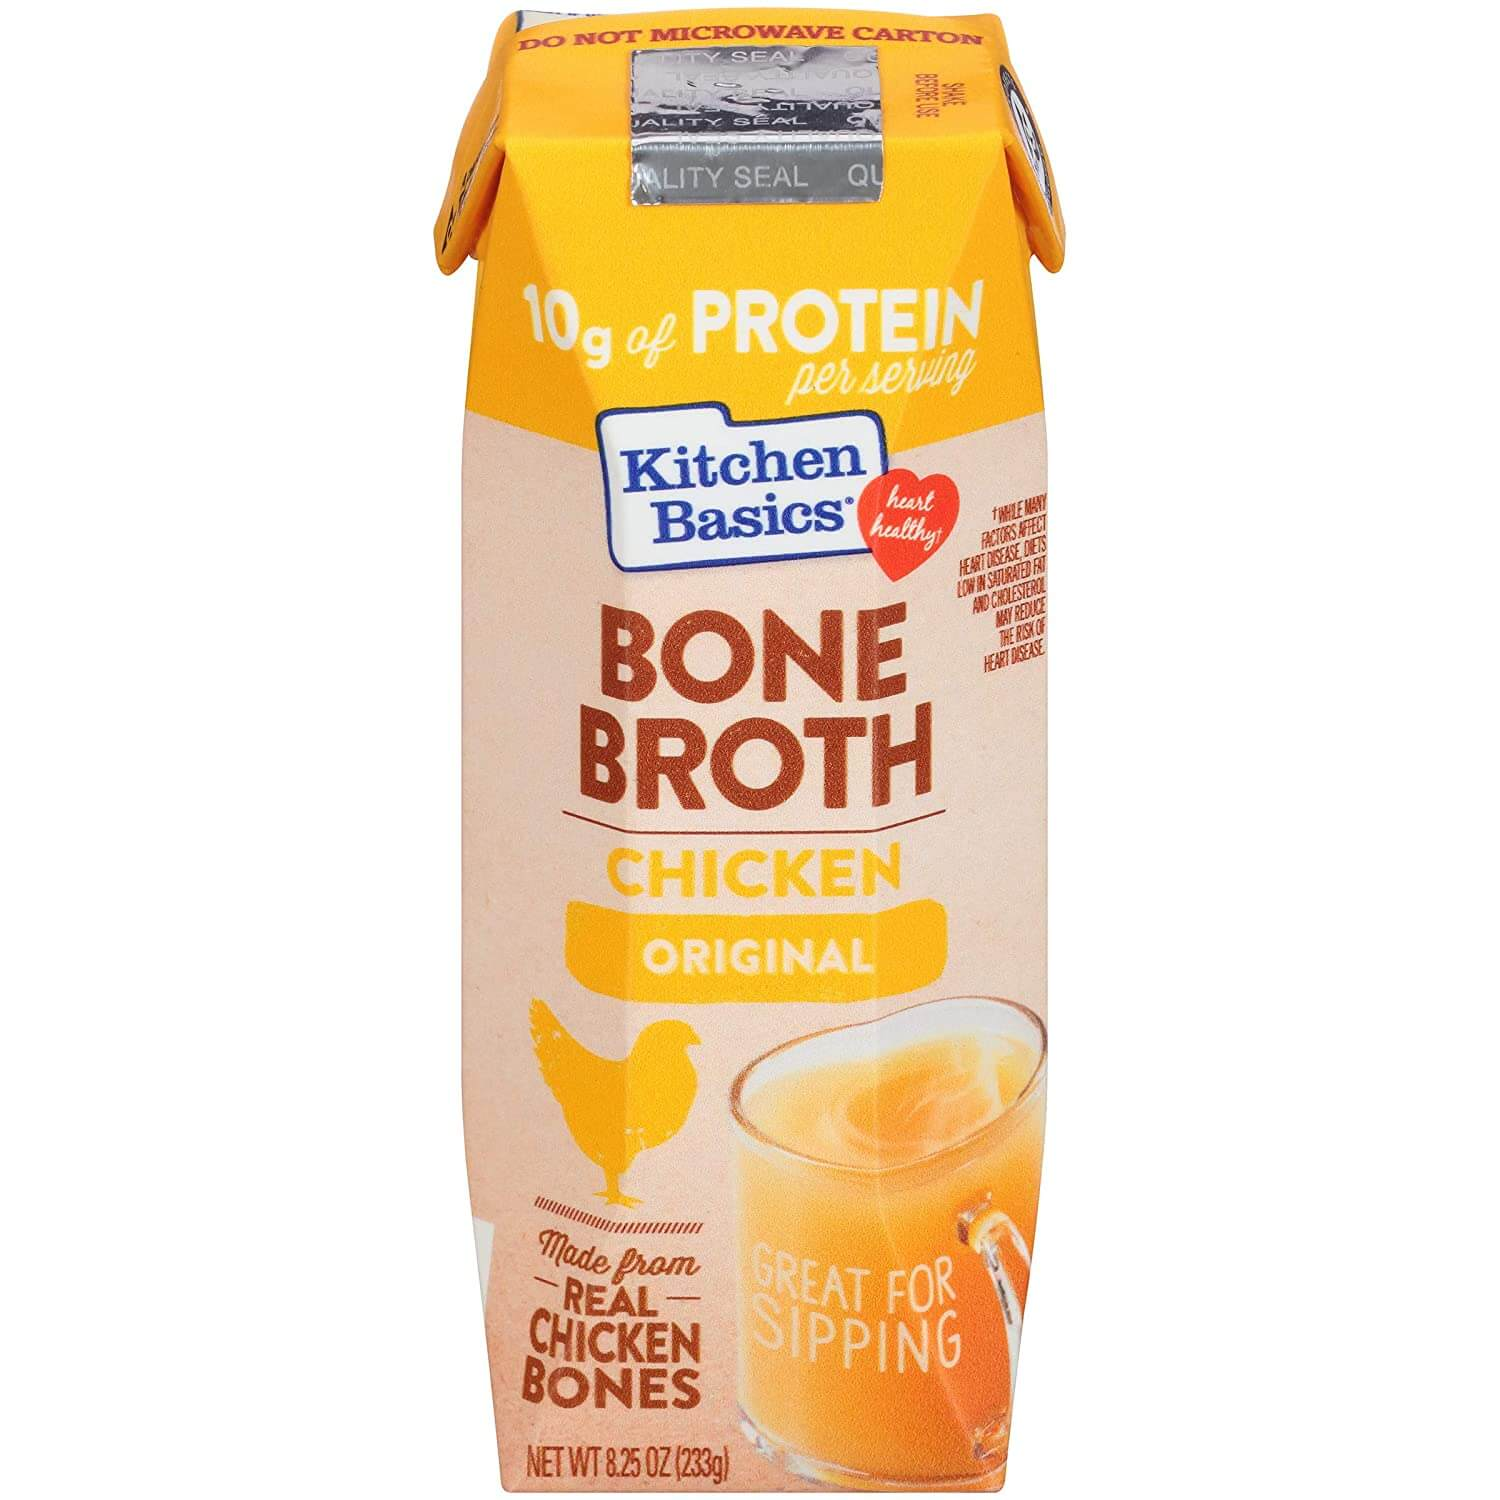 Kitchen Basics Original Chicken Bone Broth